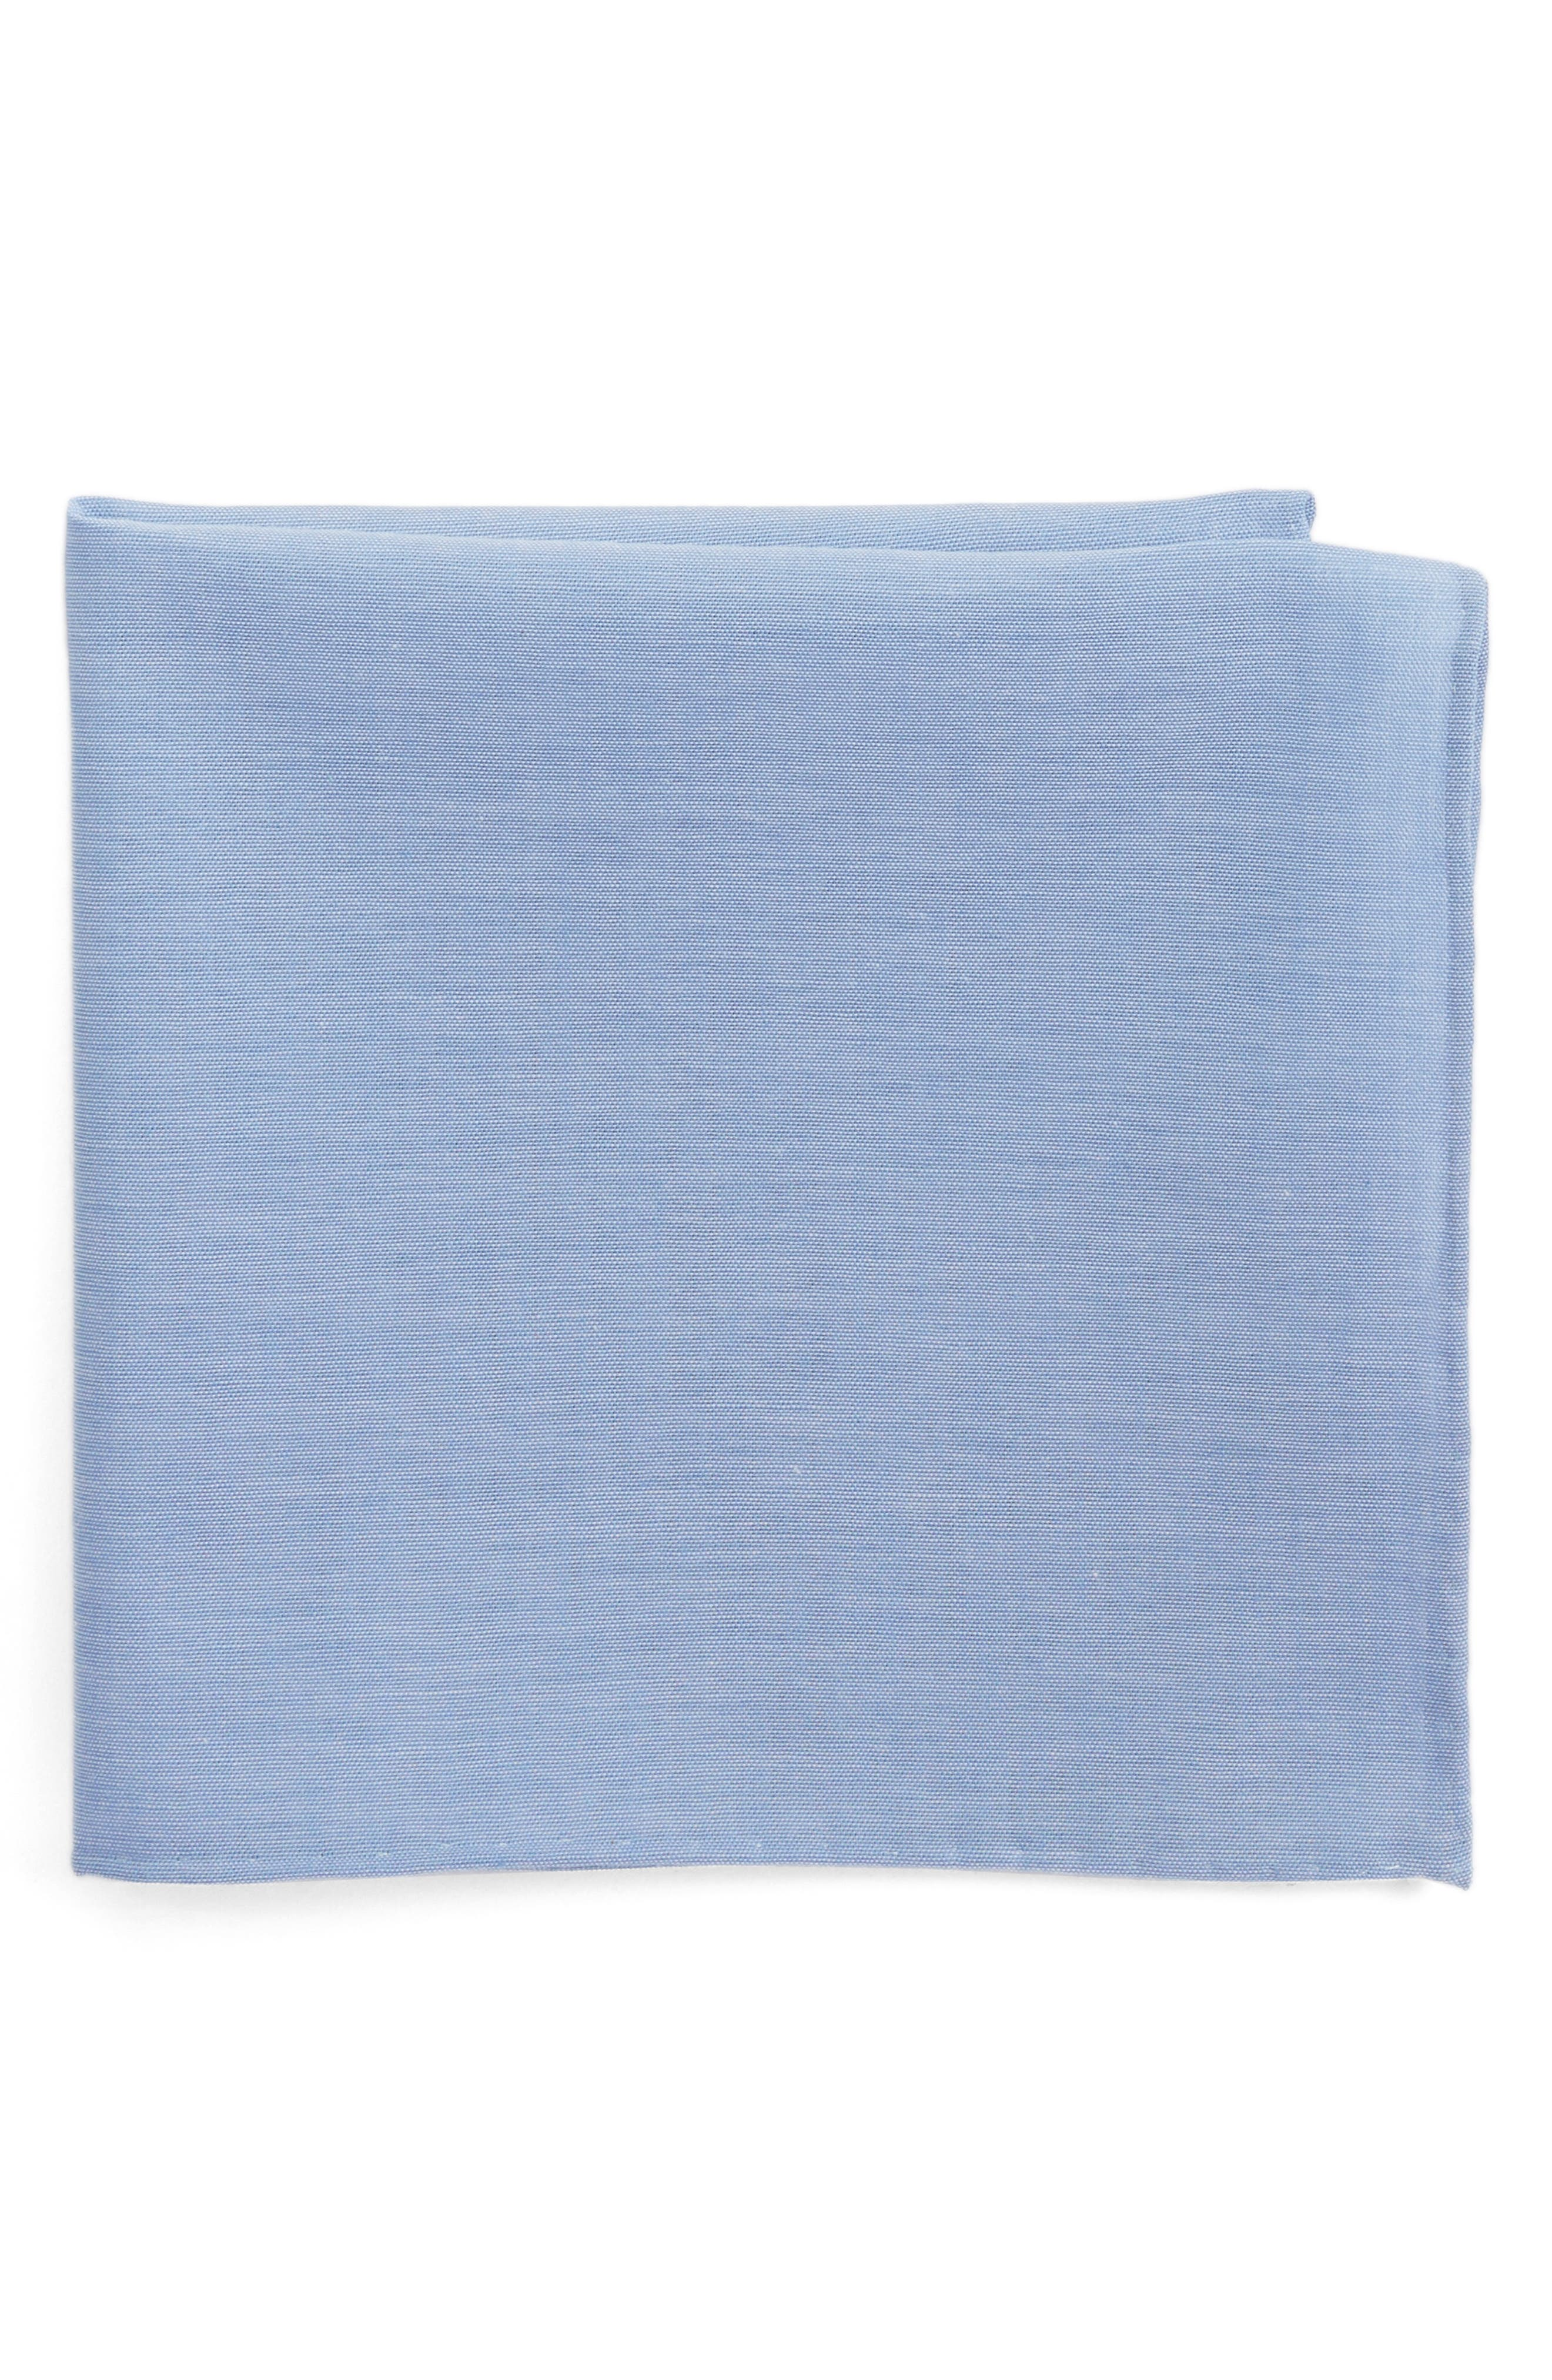 Chambray CottonPocket Square,                         Main,                         color, 455